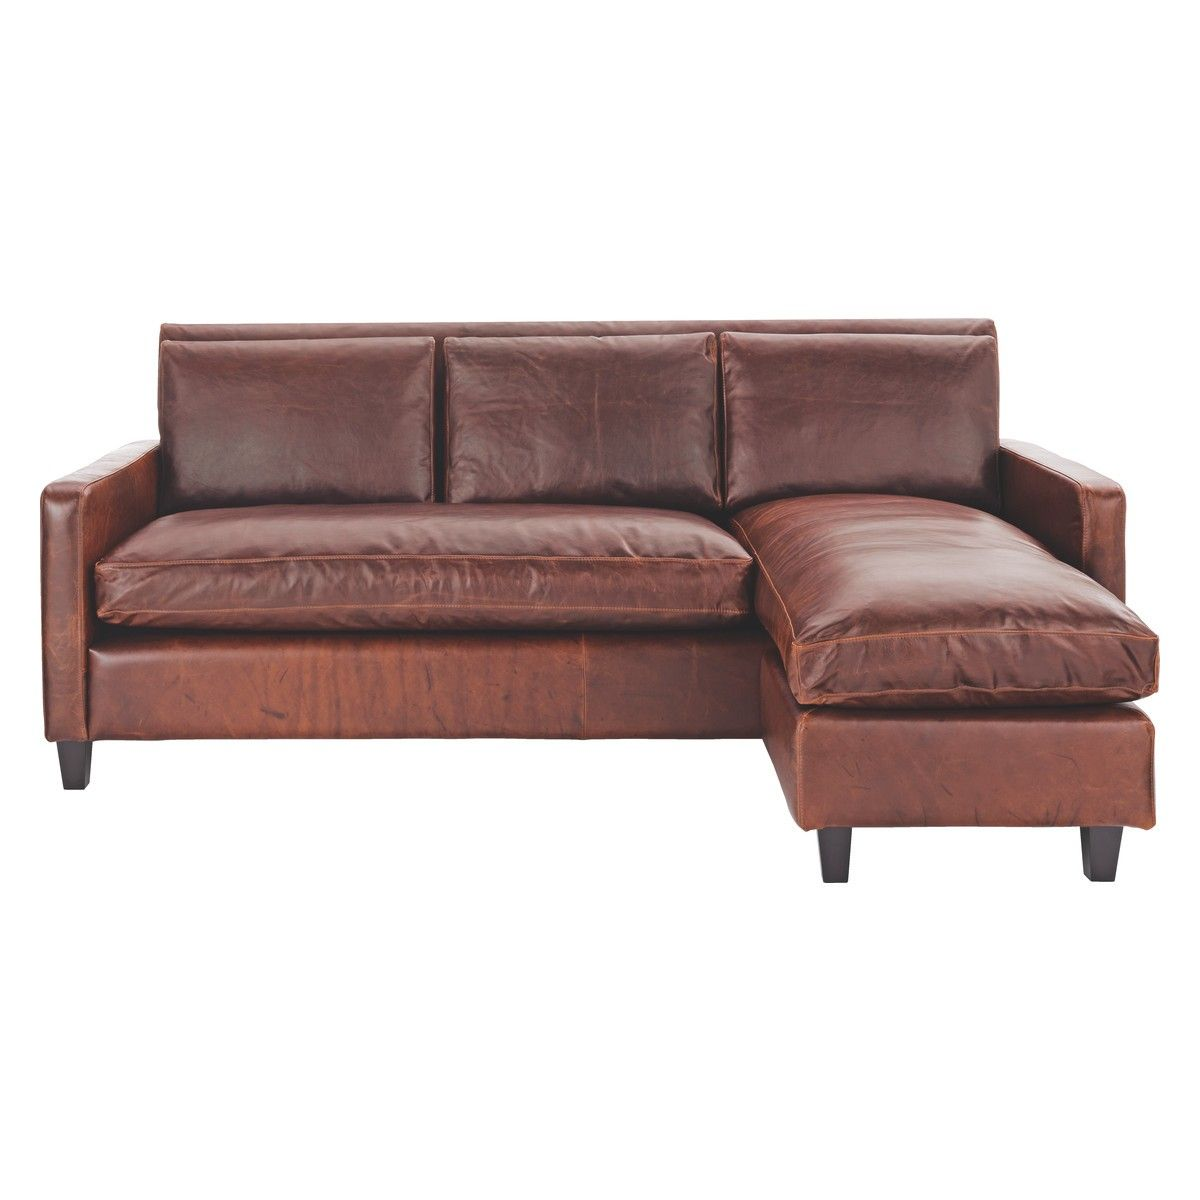 CHESTER Tan Leather Chaise Sofa, Dark Stained Feet